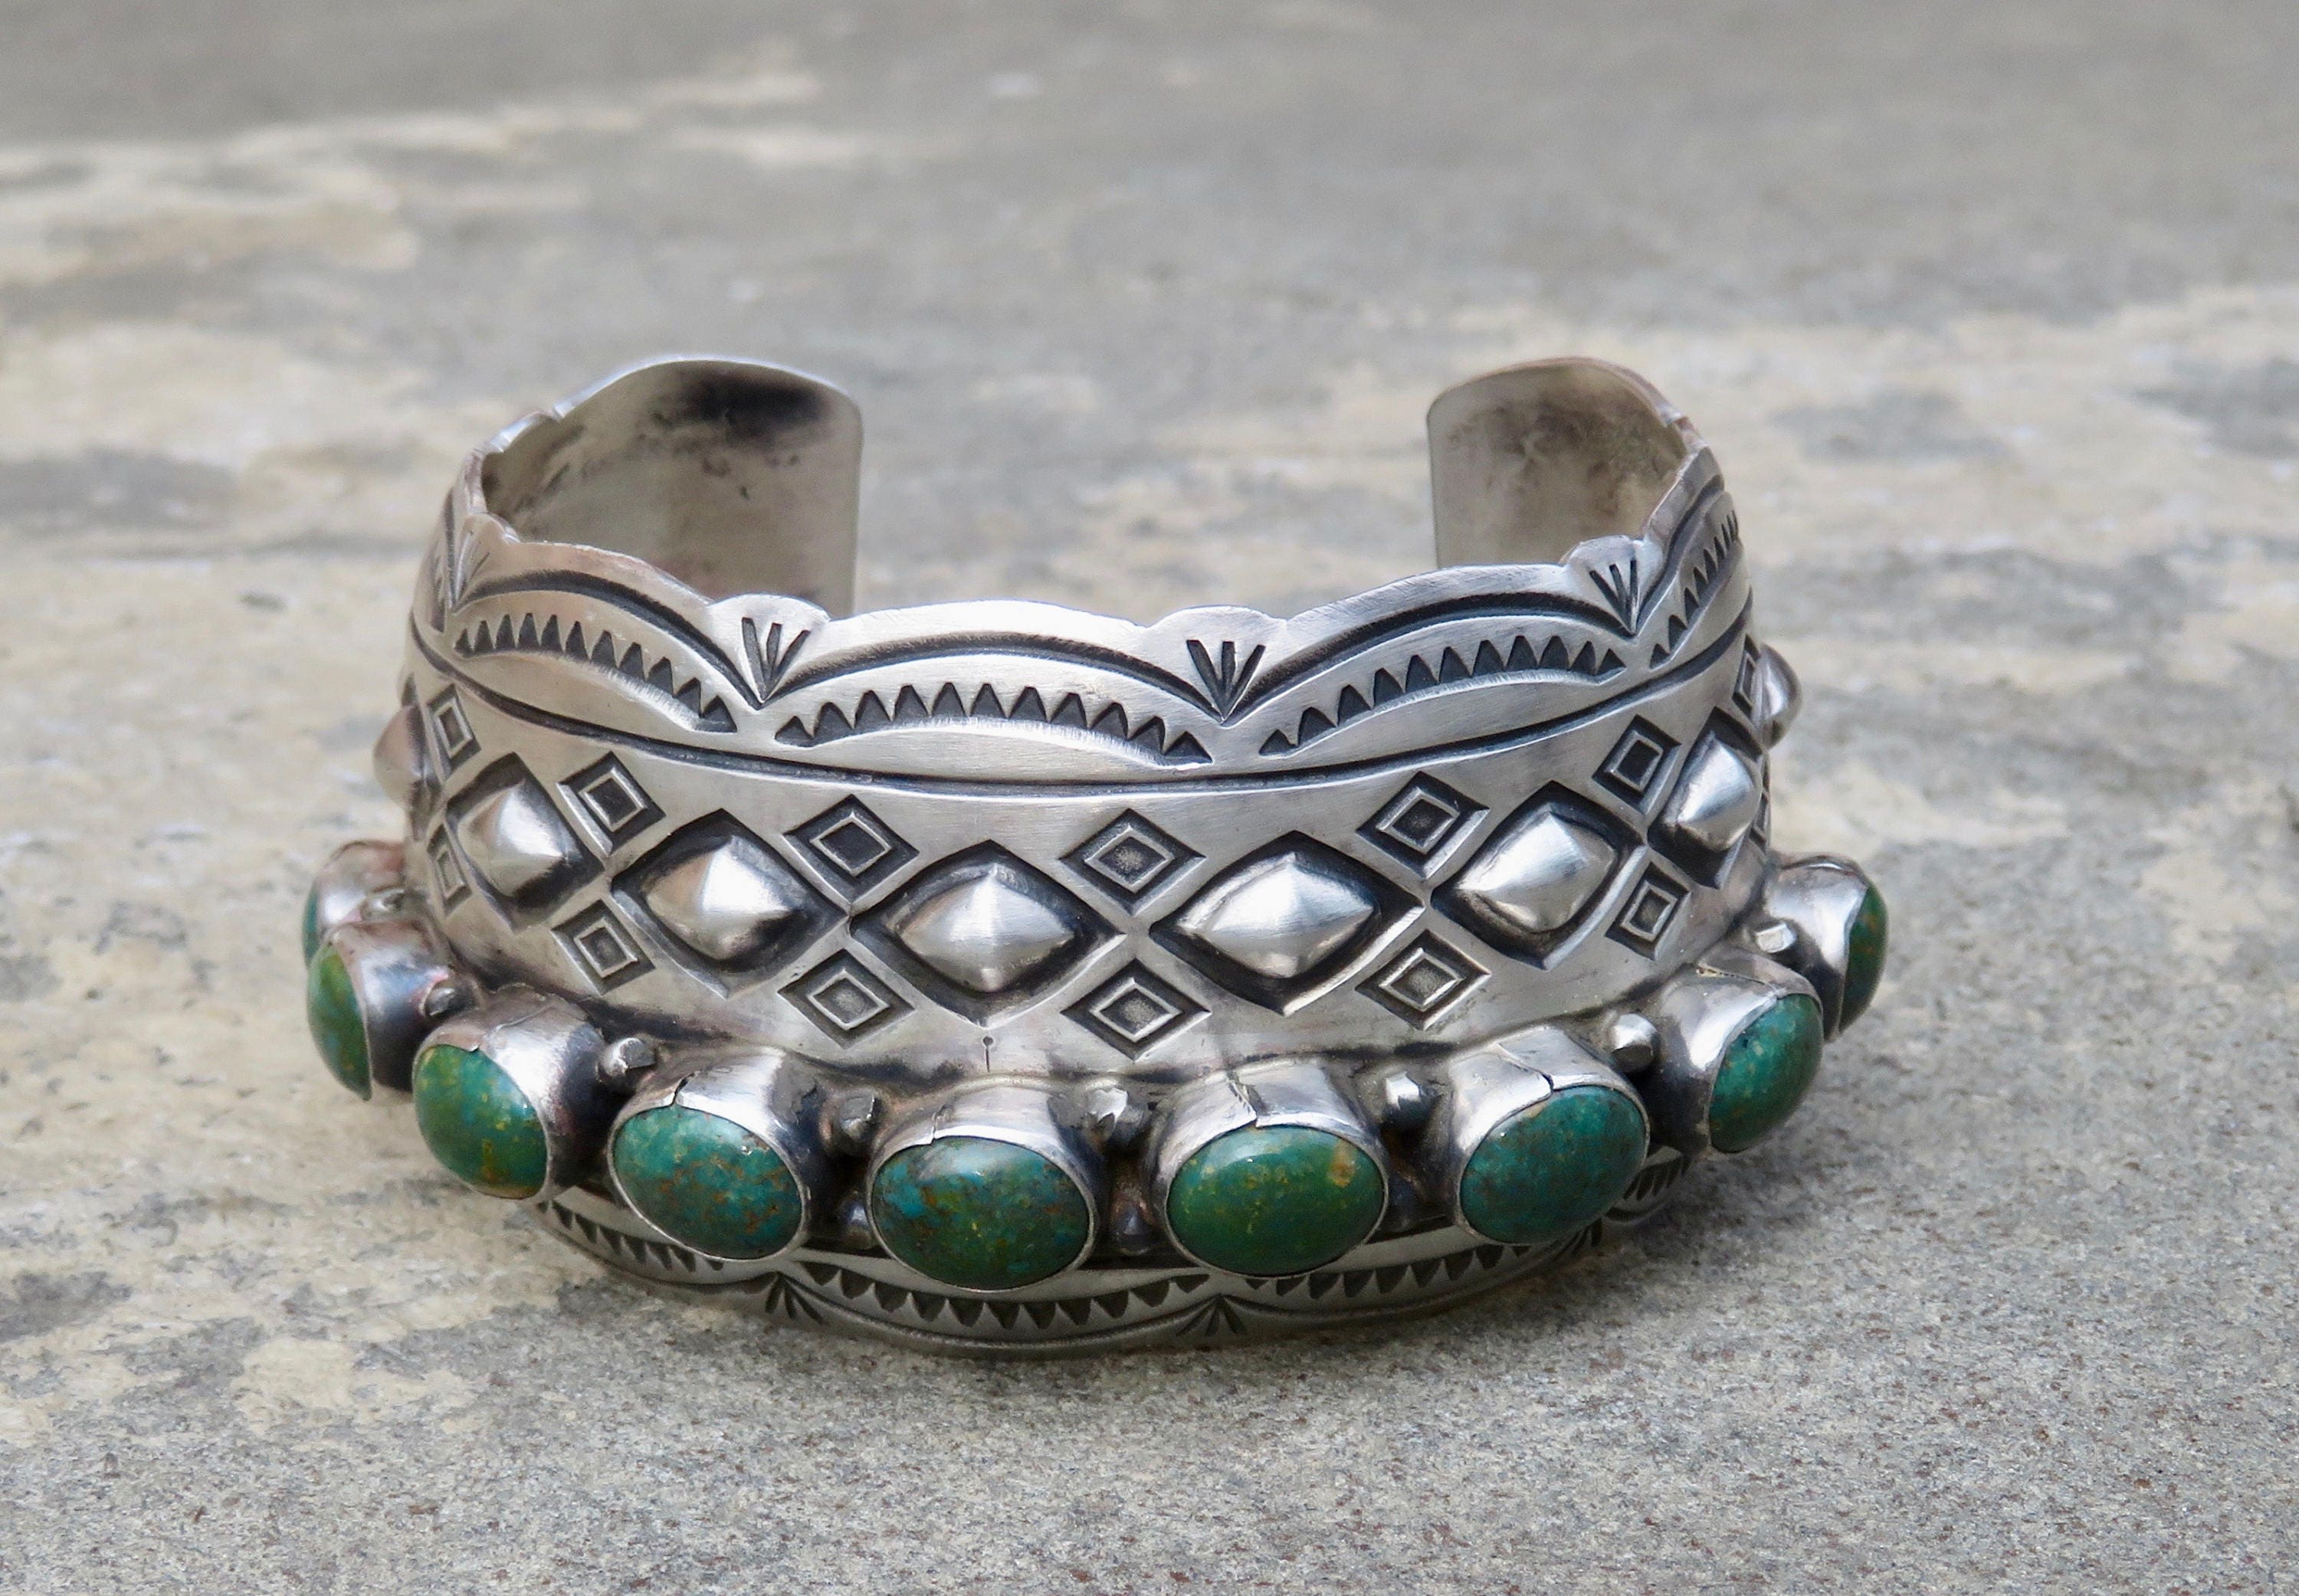 hoel jewelry american silver navajo s indian turquoise guild vintage shop native art bracelet